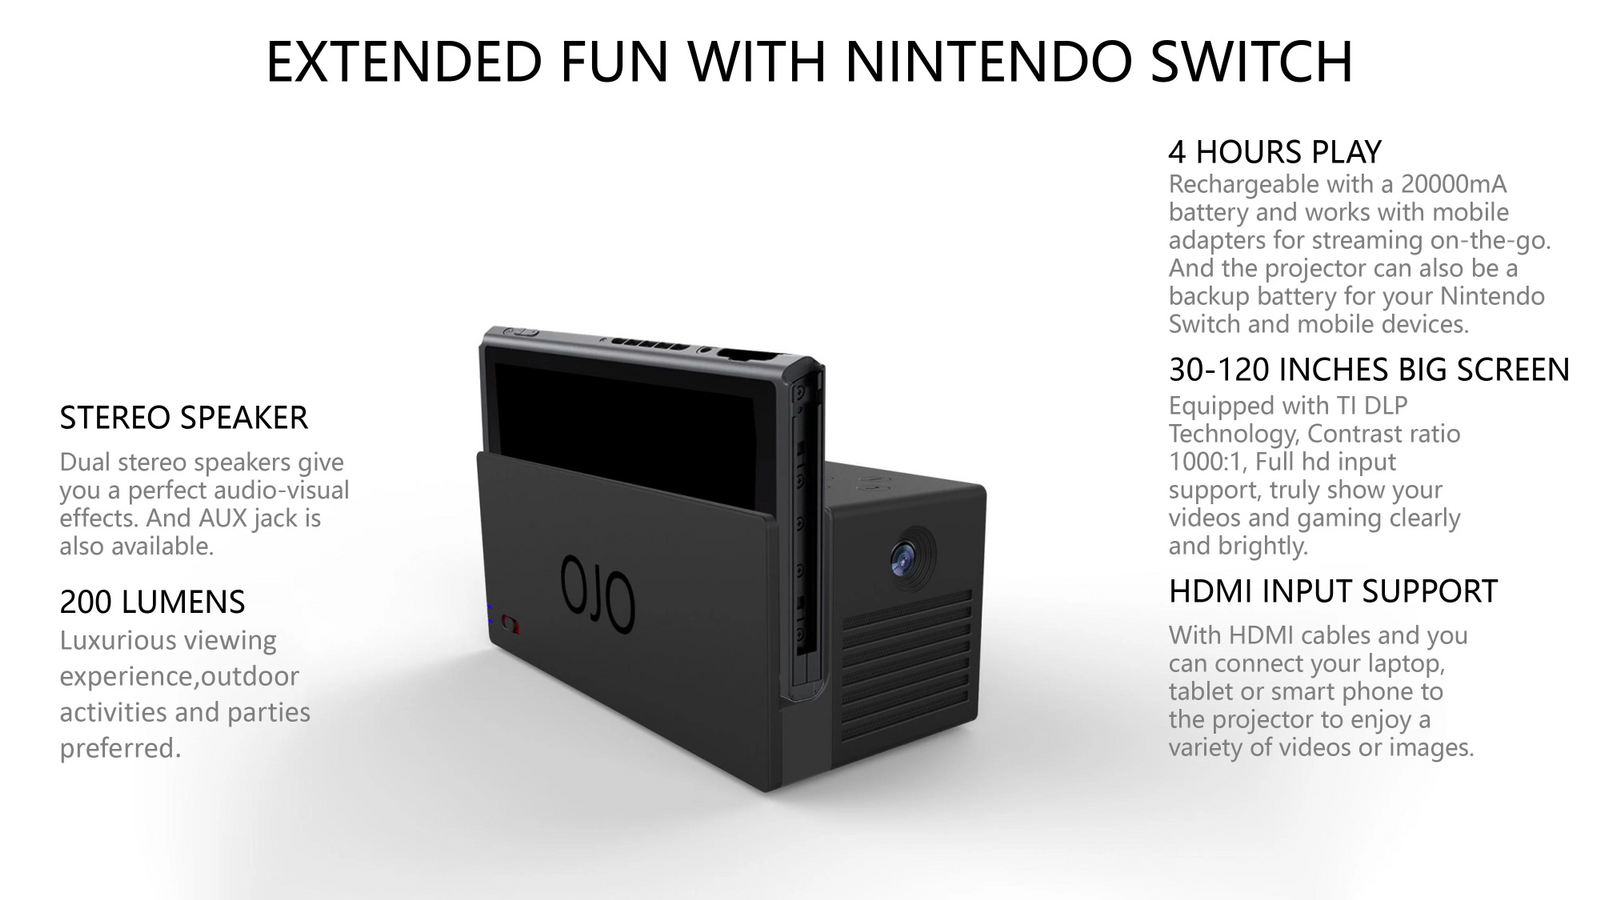 The OJO Projector Nintendo Switch Accessory